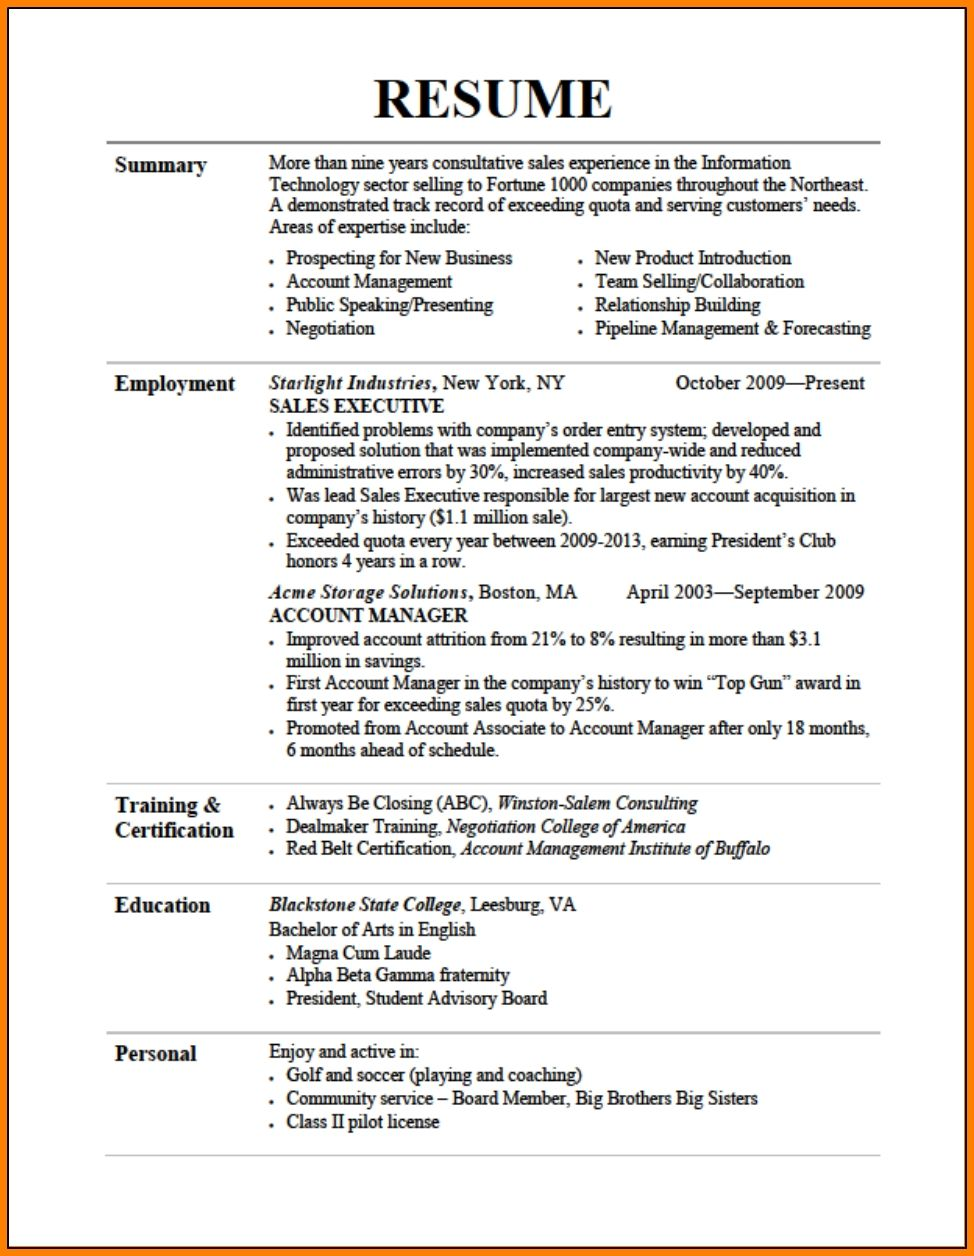 Resume Formatting Tips Job resume examples, Good resume